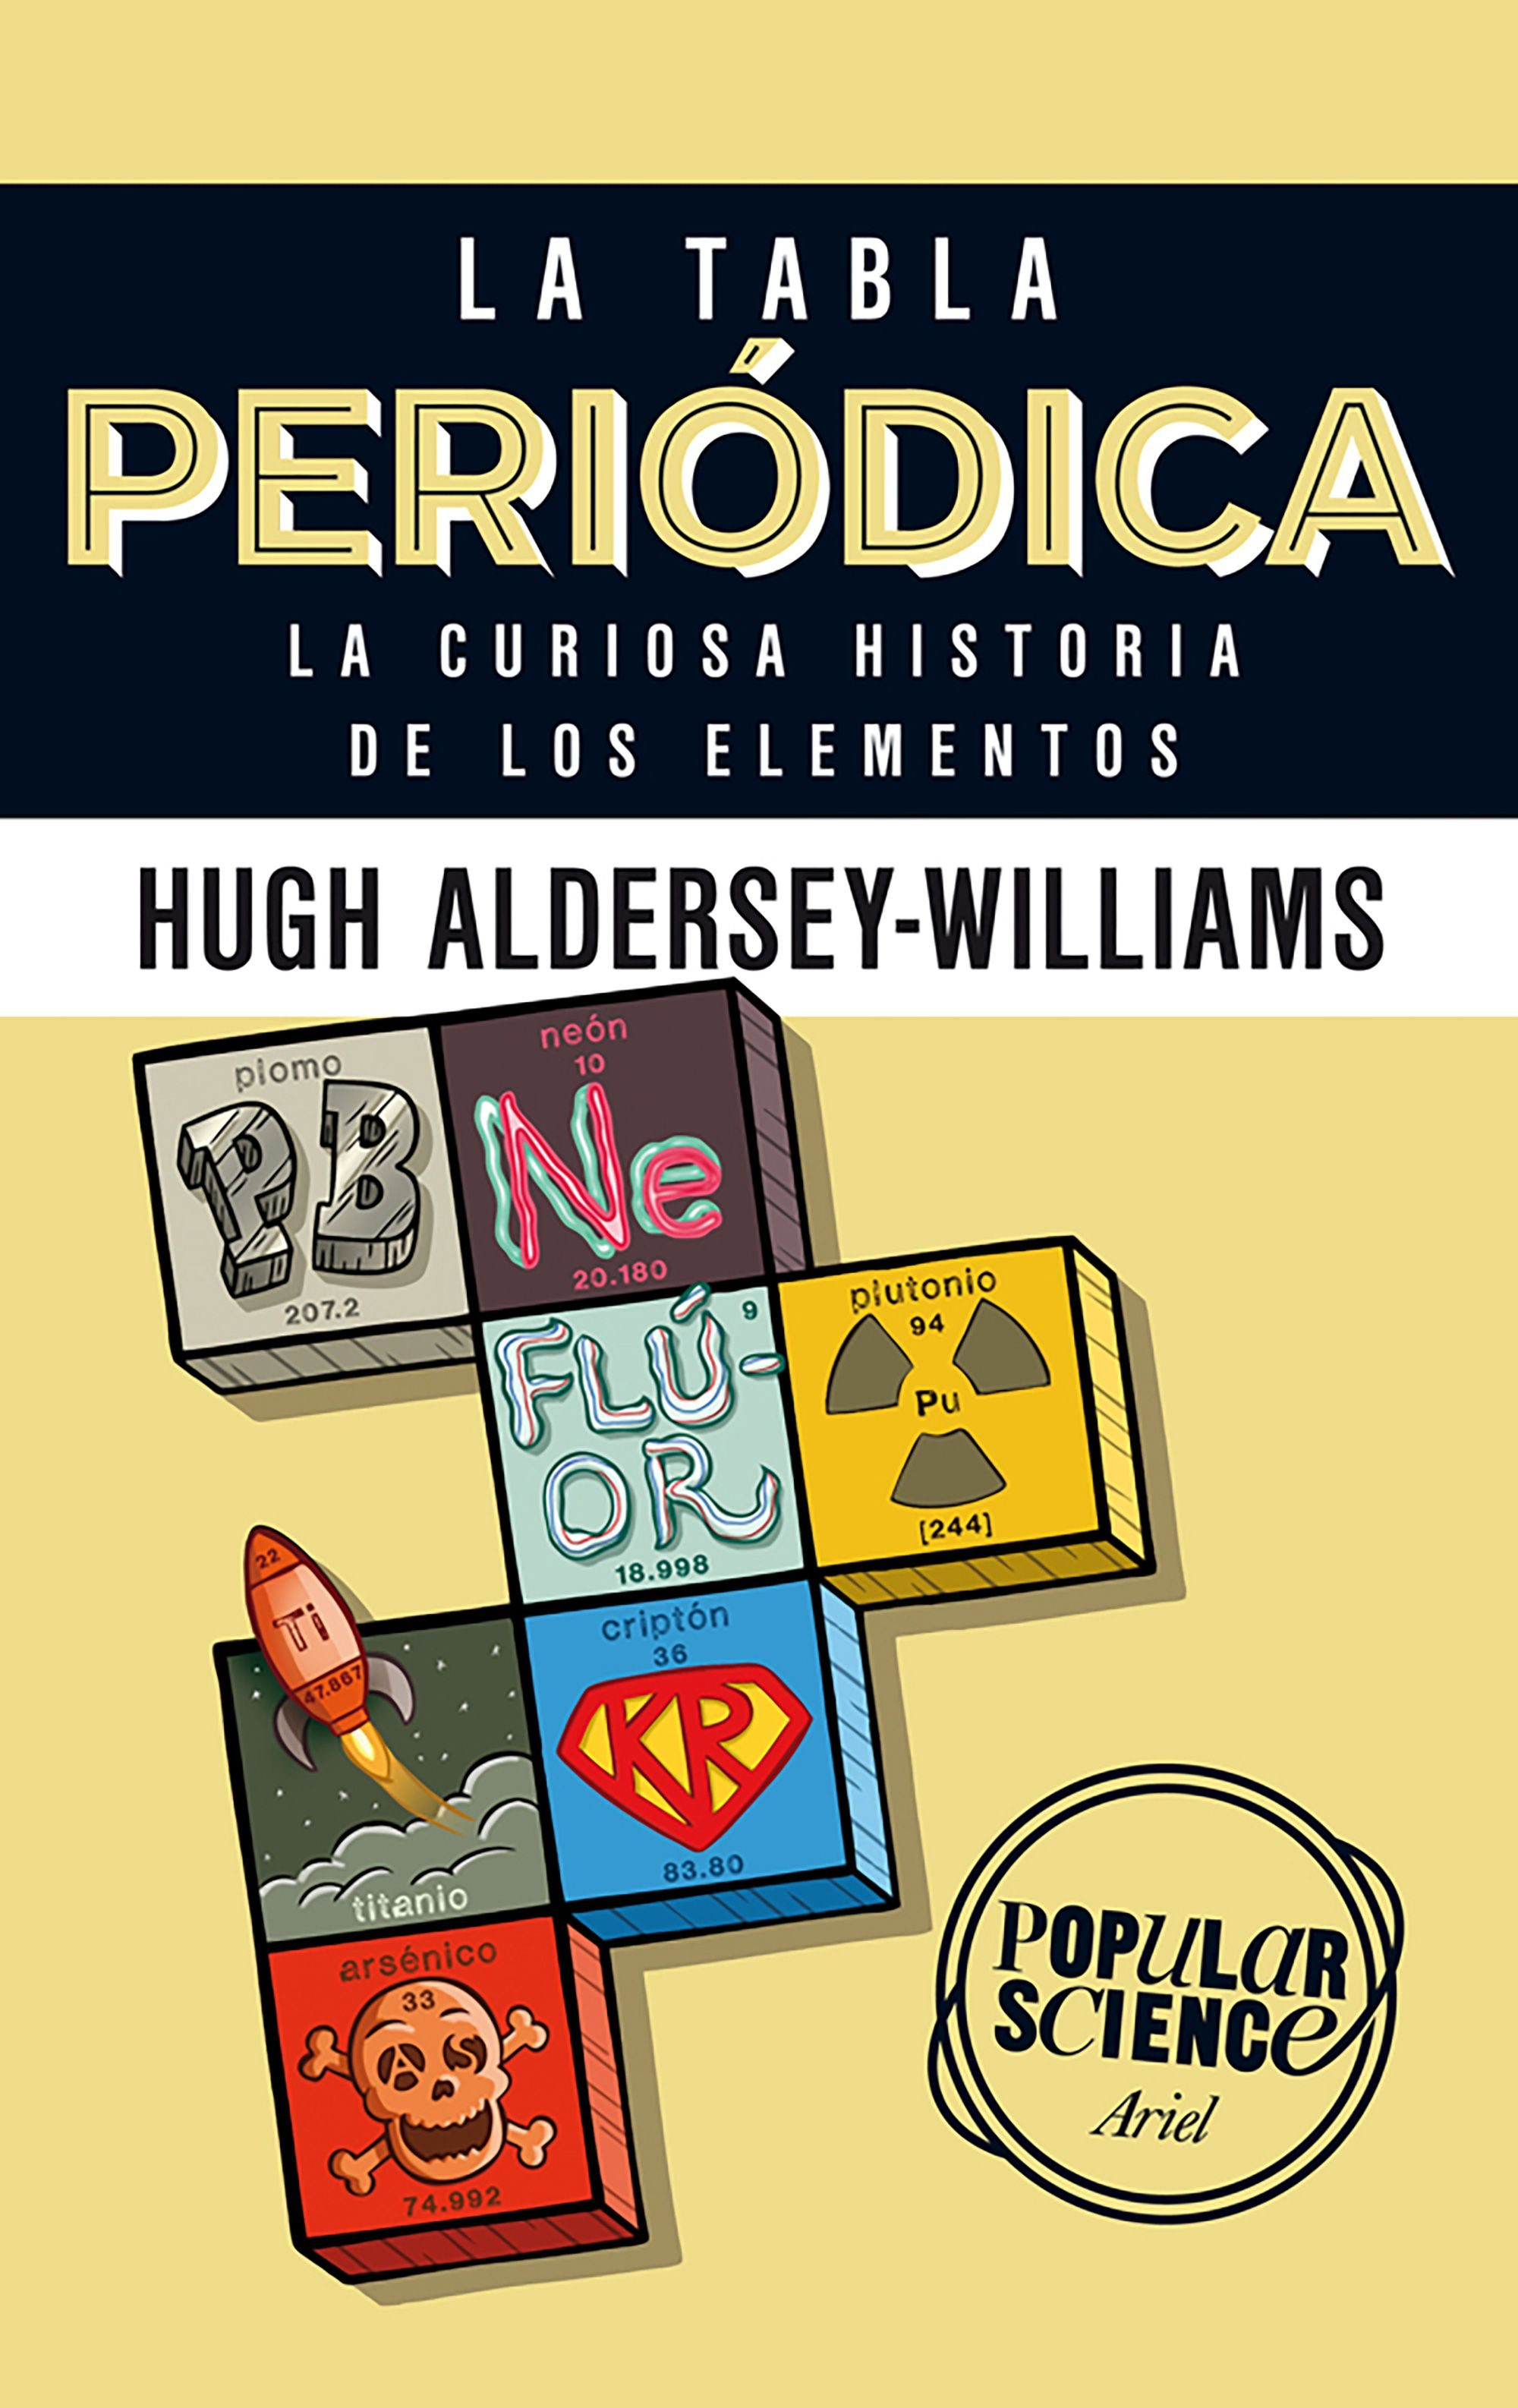 La tabla periodica hugh aldersey williams comprar libro la tabla periodica hugh aldersey williams 9788434422520 urtaz Gallery